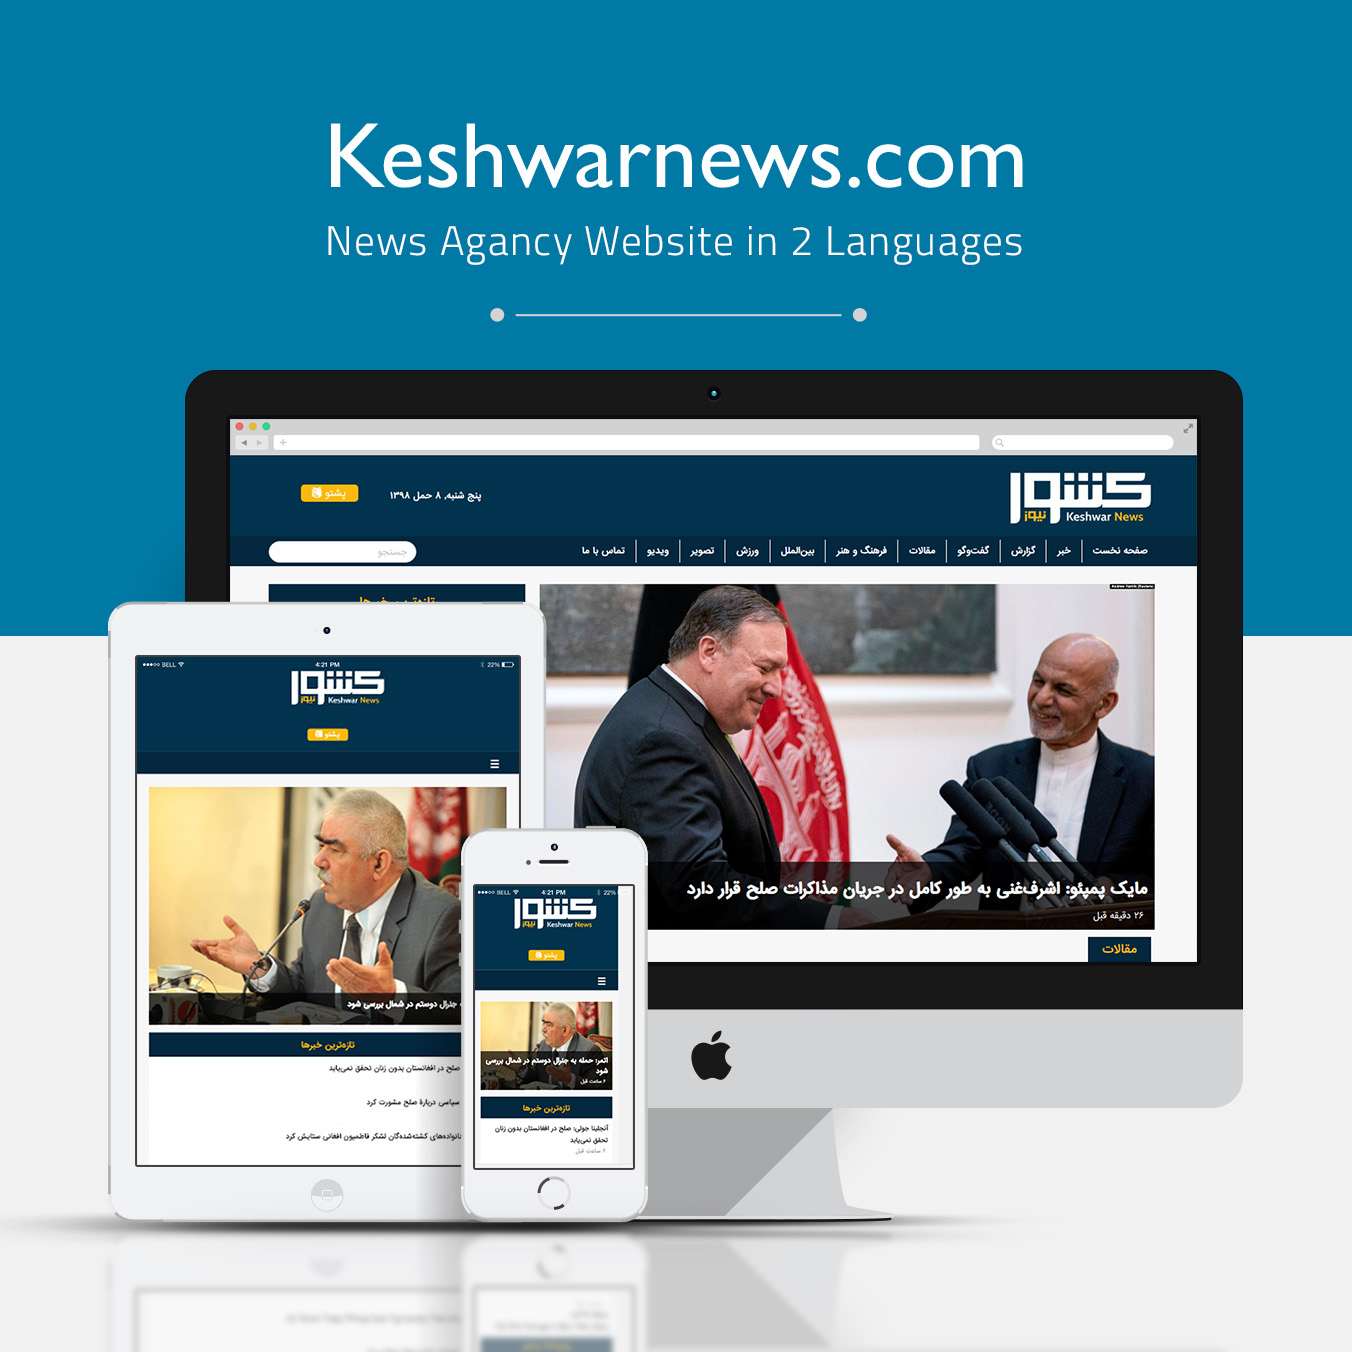 Keshwarnews – News agency website